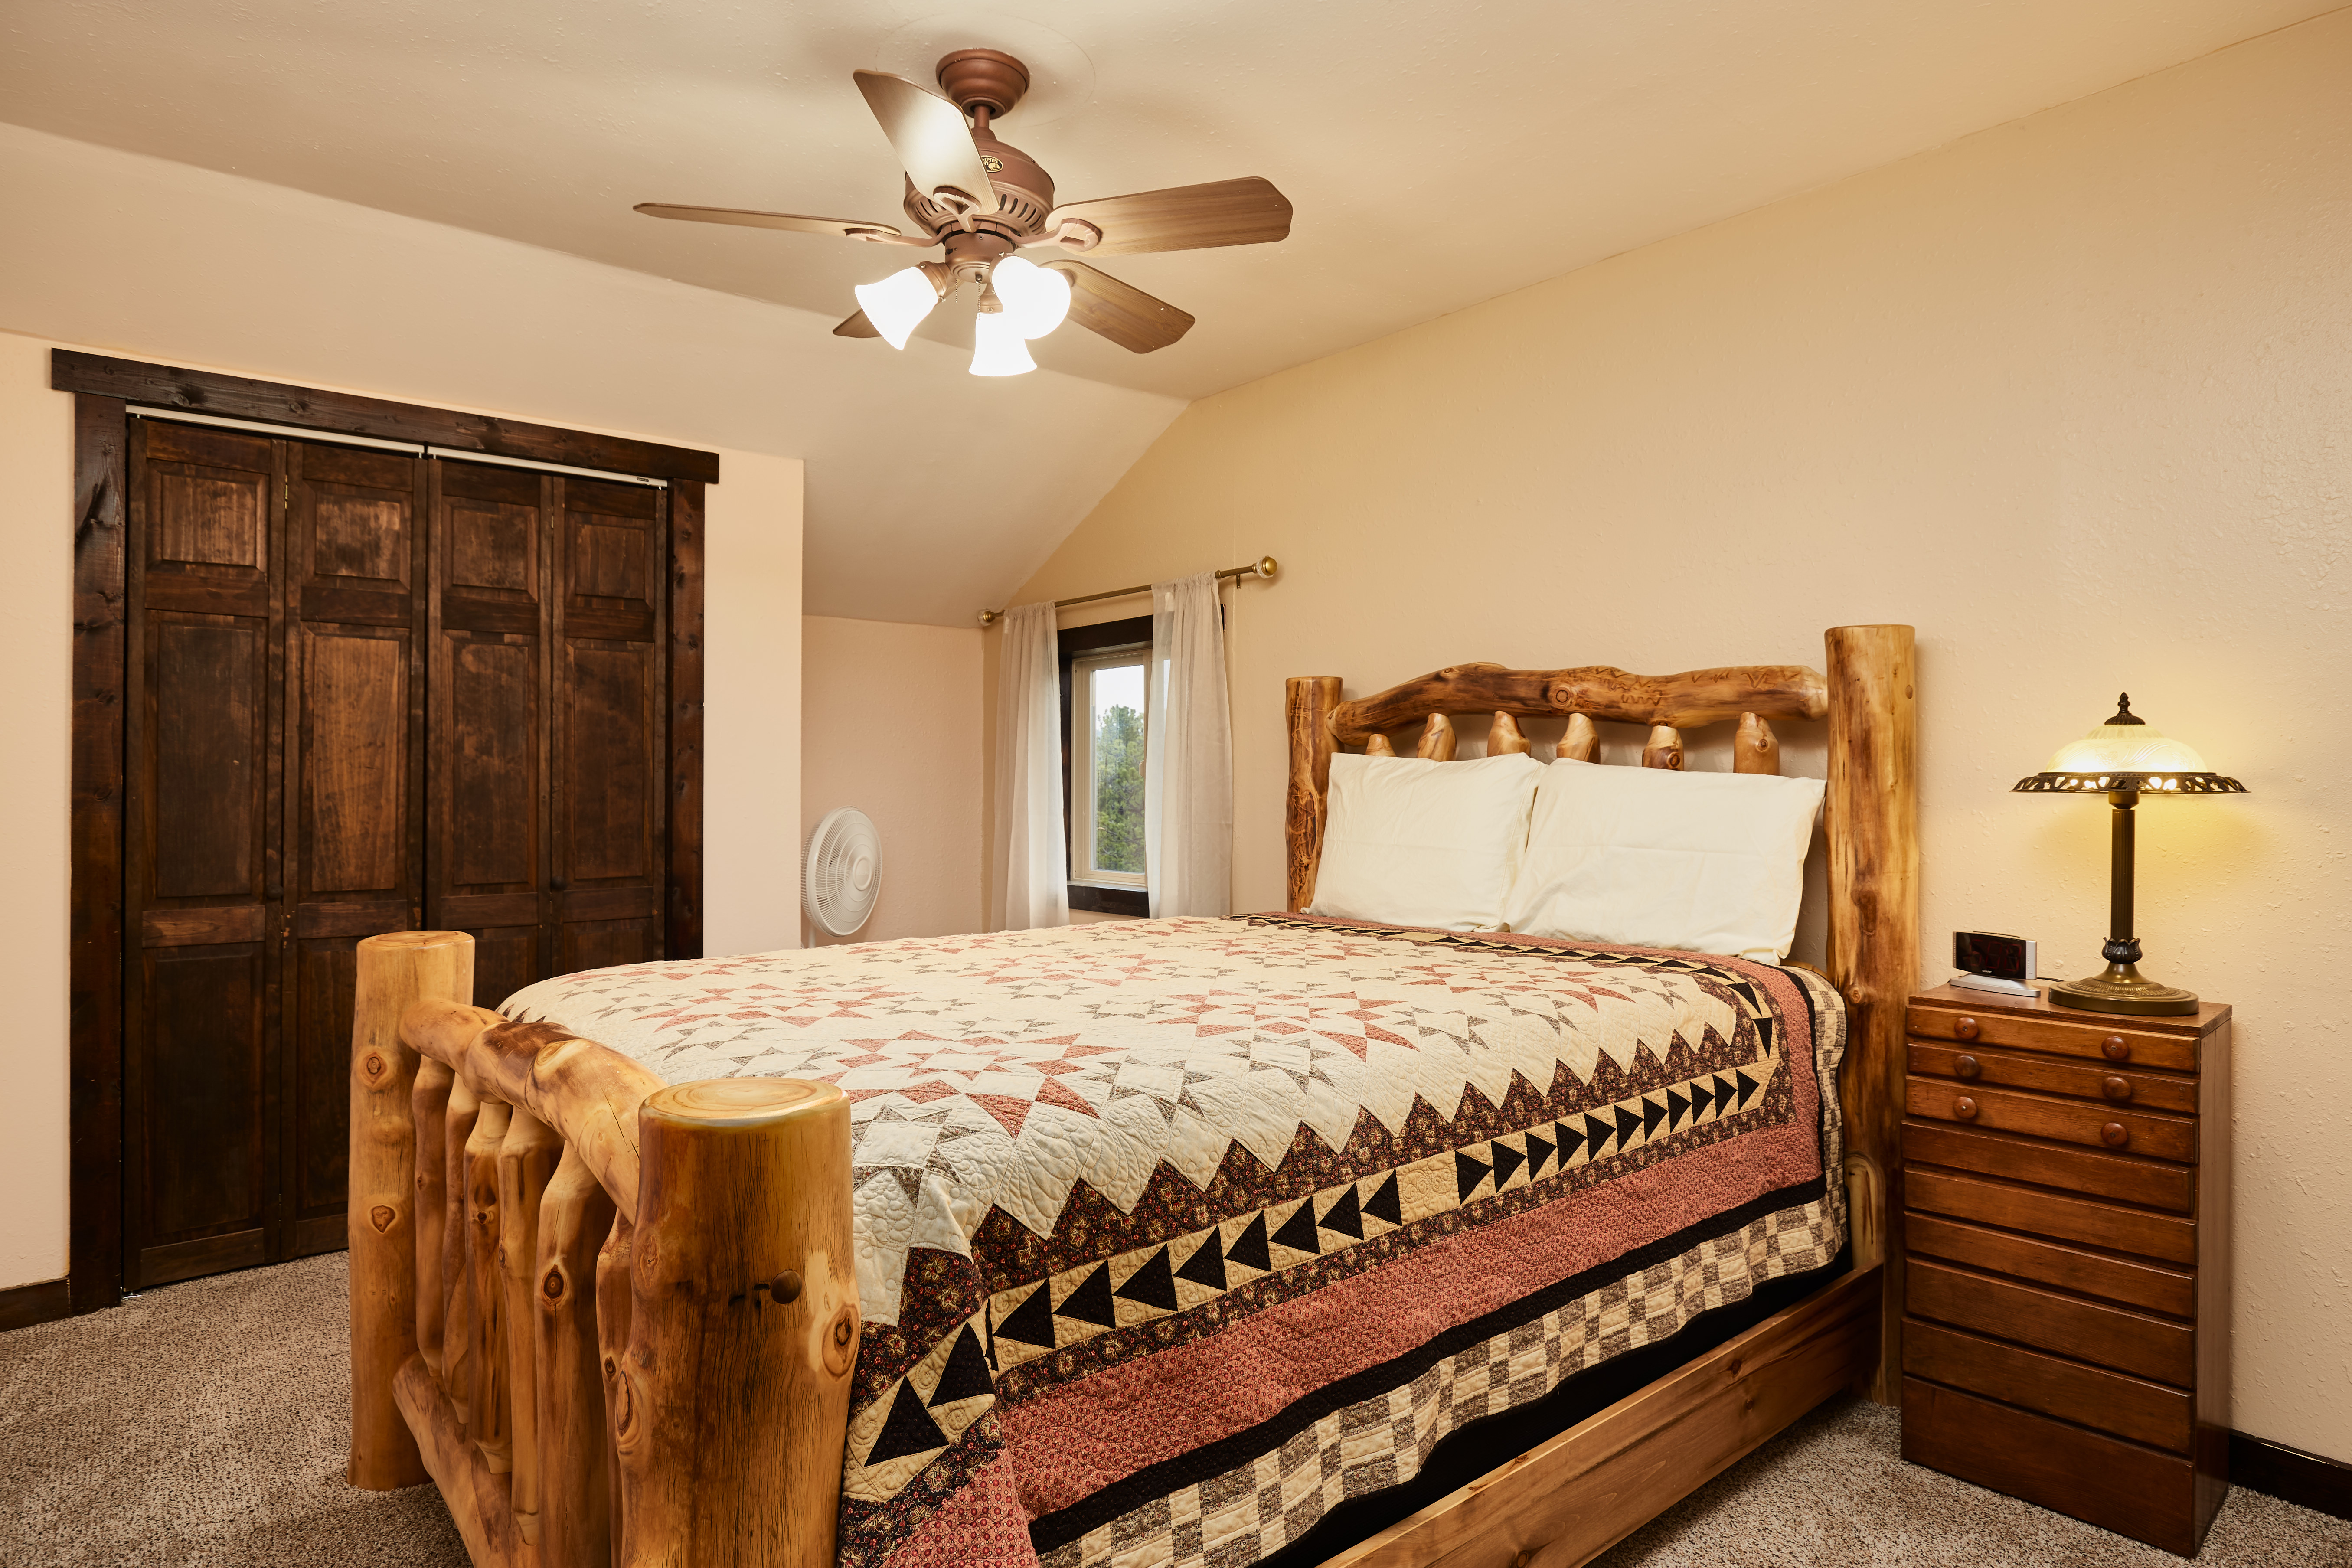 The second upstairs bedroom has a queen bed.